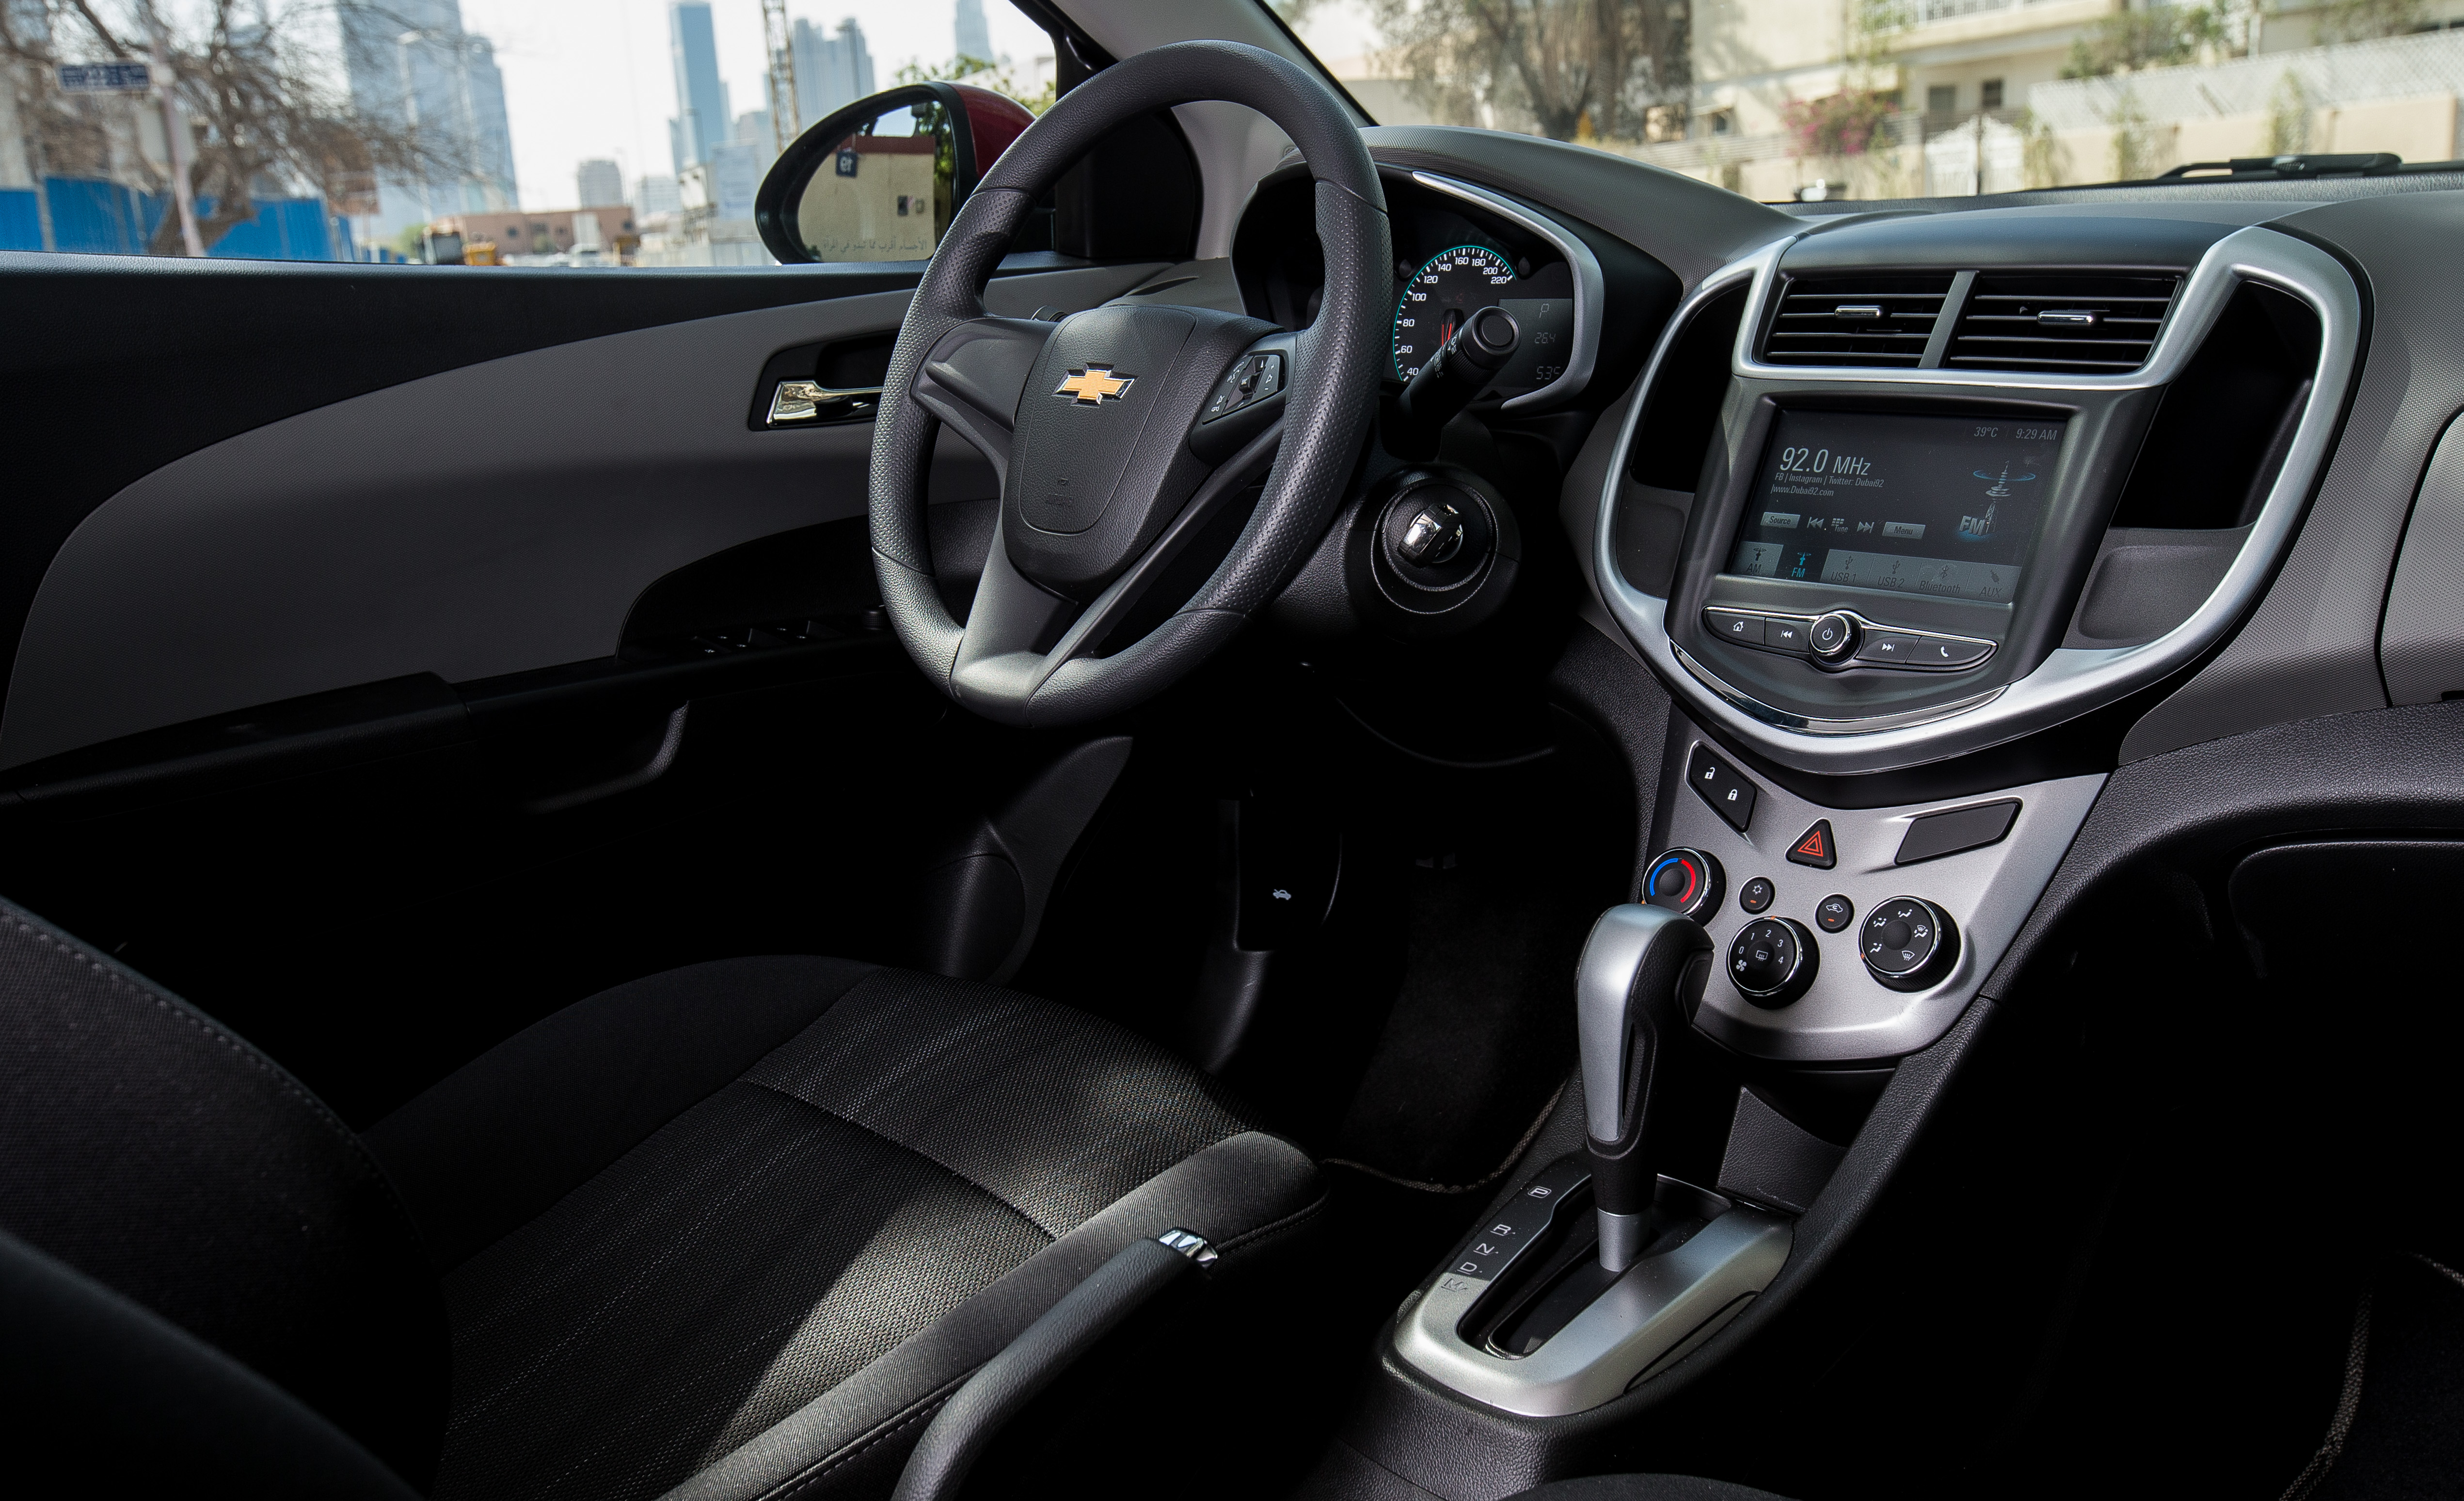 chevrolet silverado chevy interior running miles of and pictures